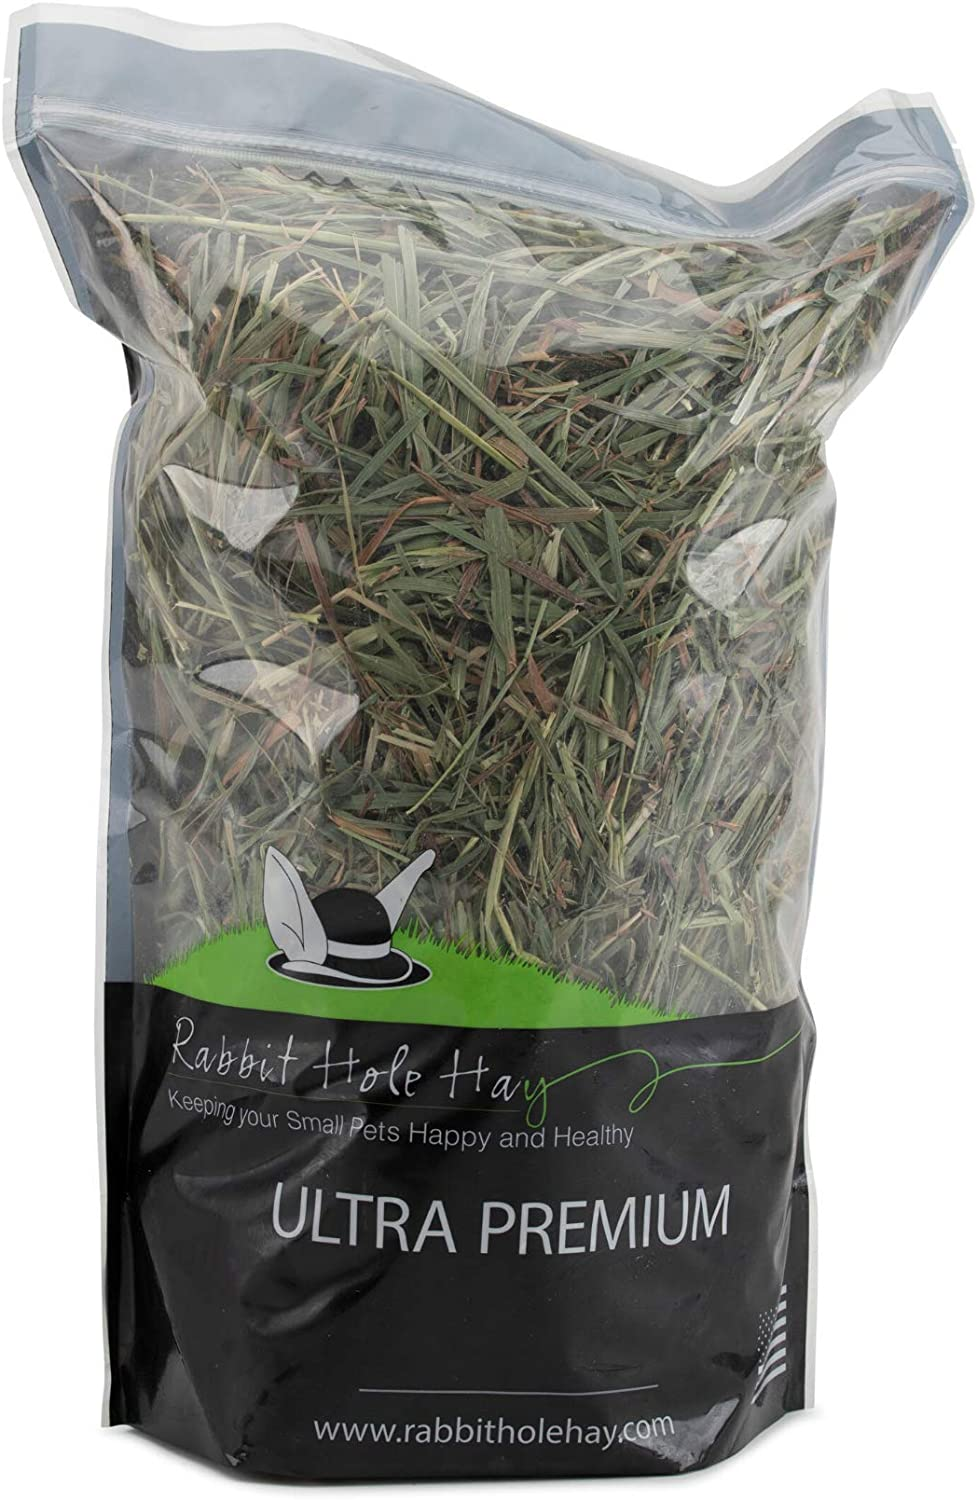 Rabbit Hole Hay Ultra Premium, Hand Packed Soft Timothy Hay for Your Small Pet Rabbit, Chinchilla, or Guinea Pig (24oz)